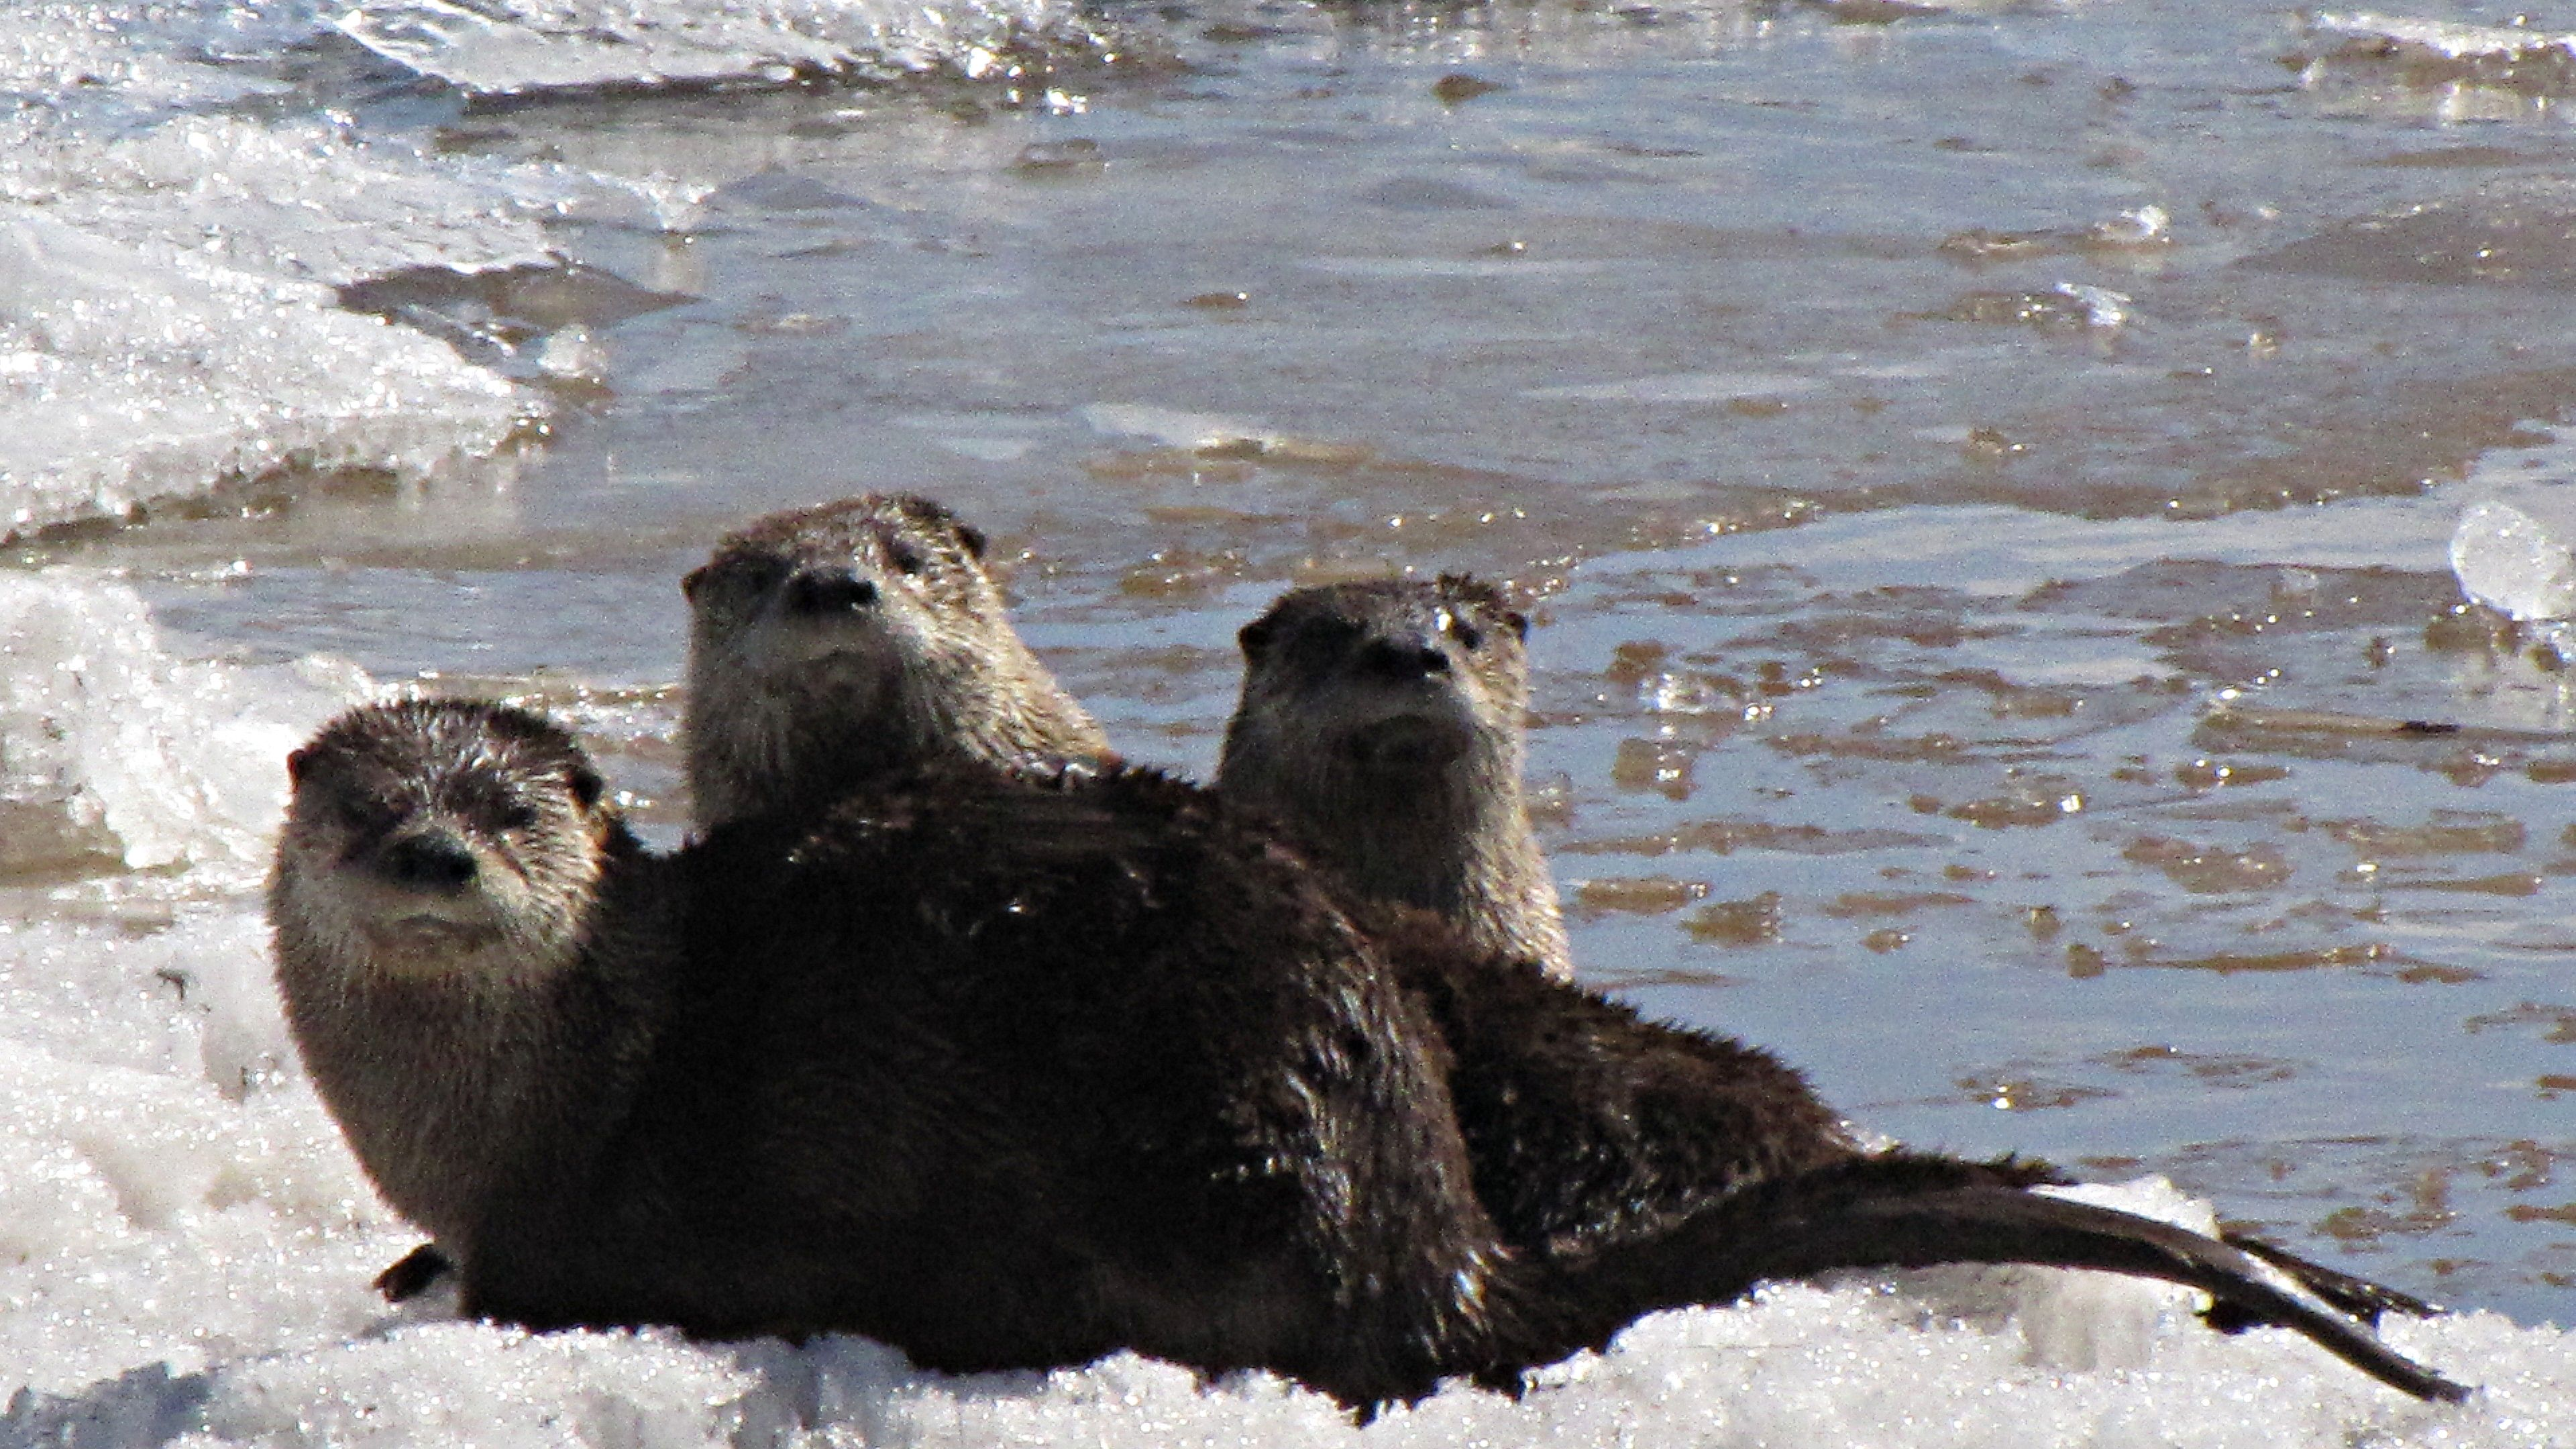 Otters at play in Port Wing harbor